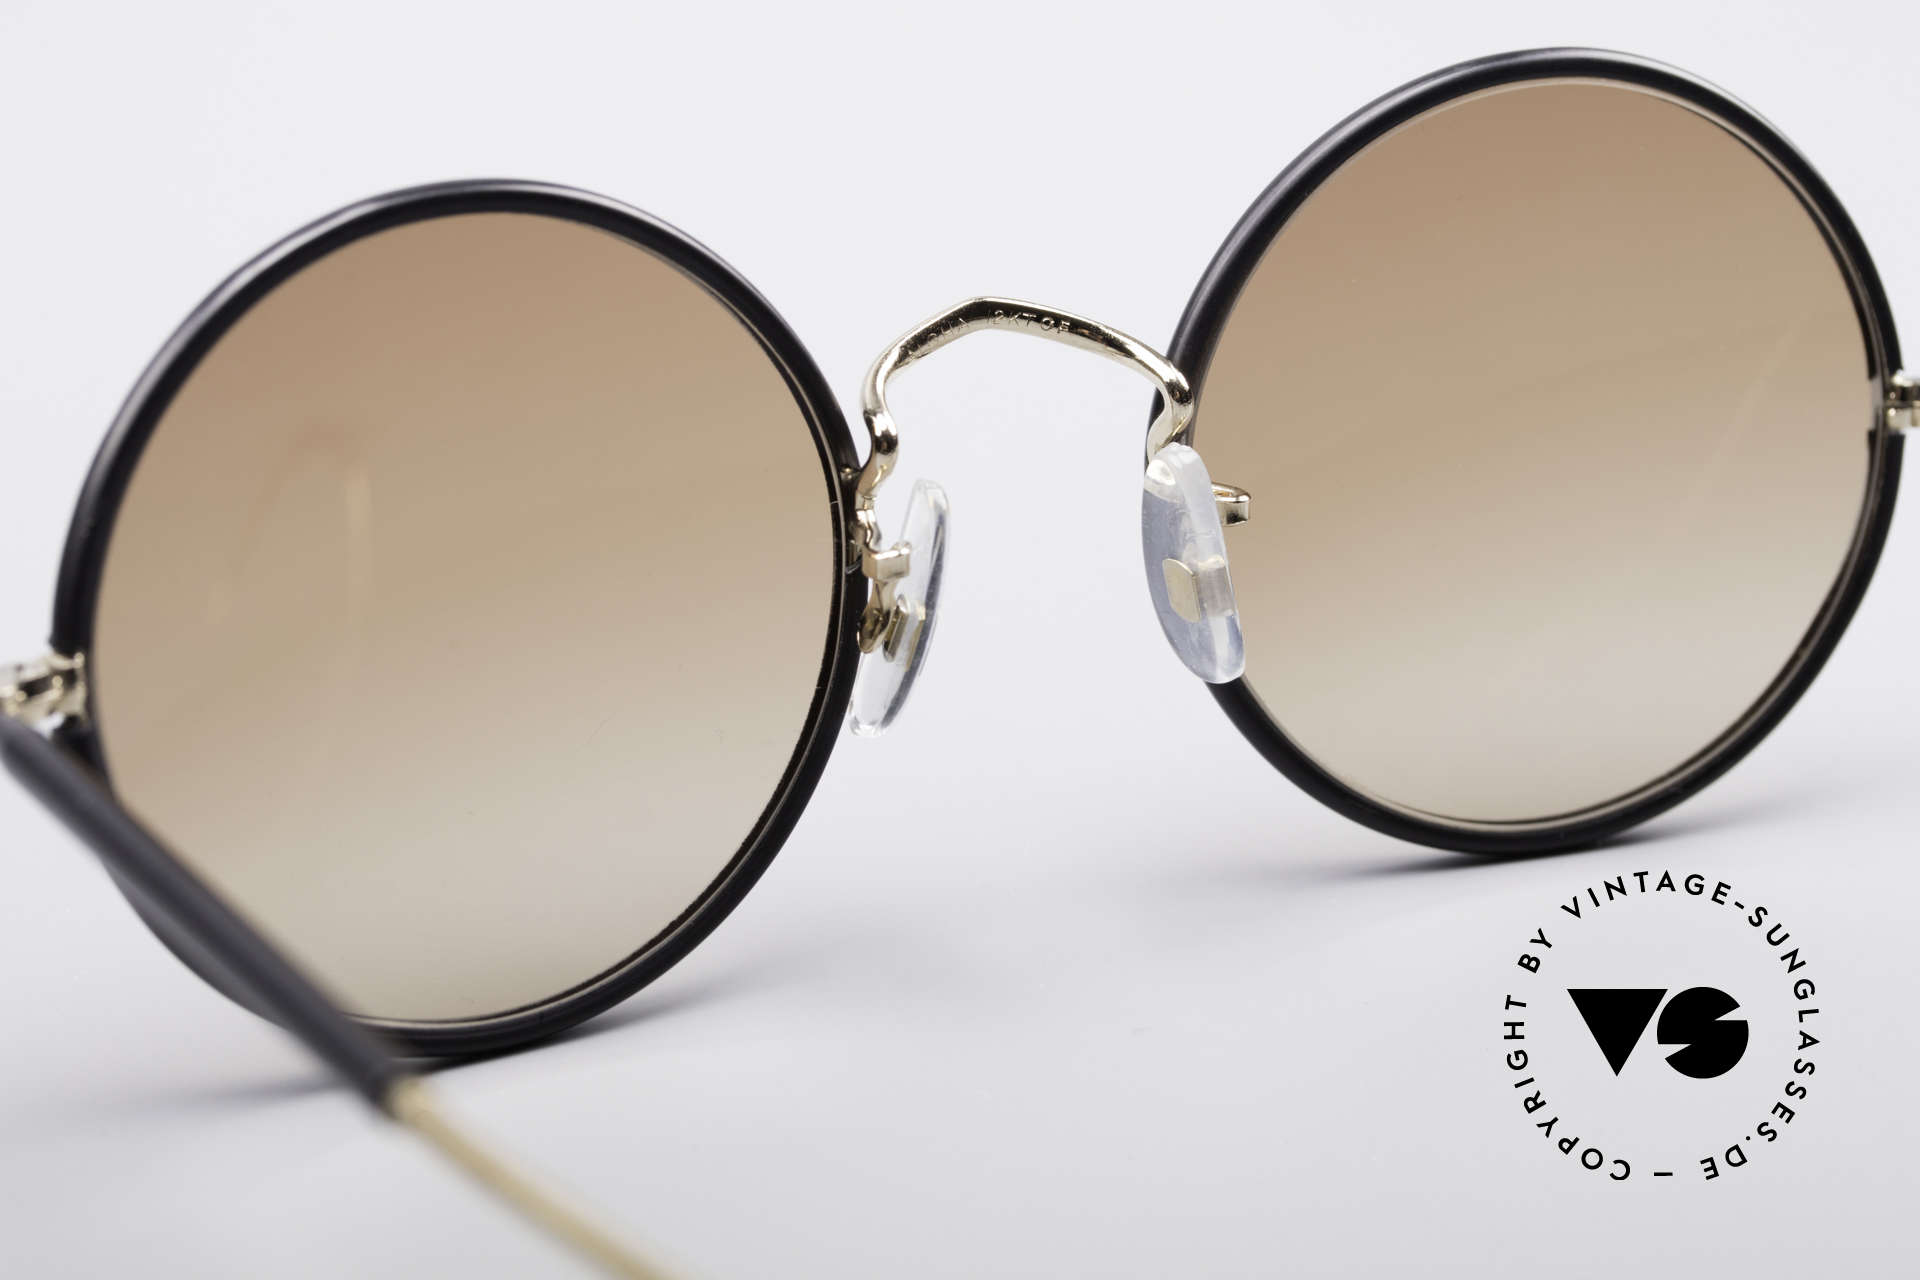 Savile Row Round 47/20 Harry Potter Glasses, unworn rarity, size 47/20, light brown tinted lenses, Made for Men